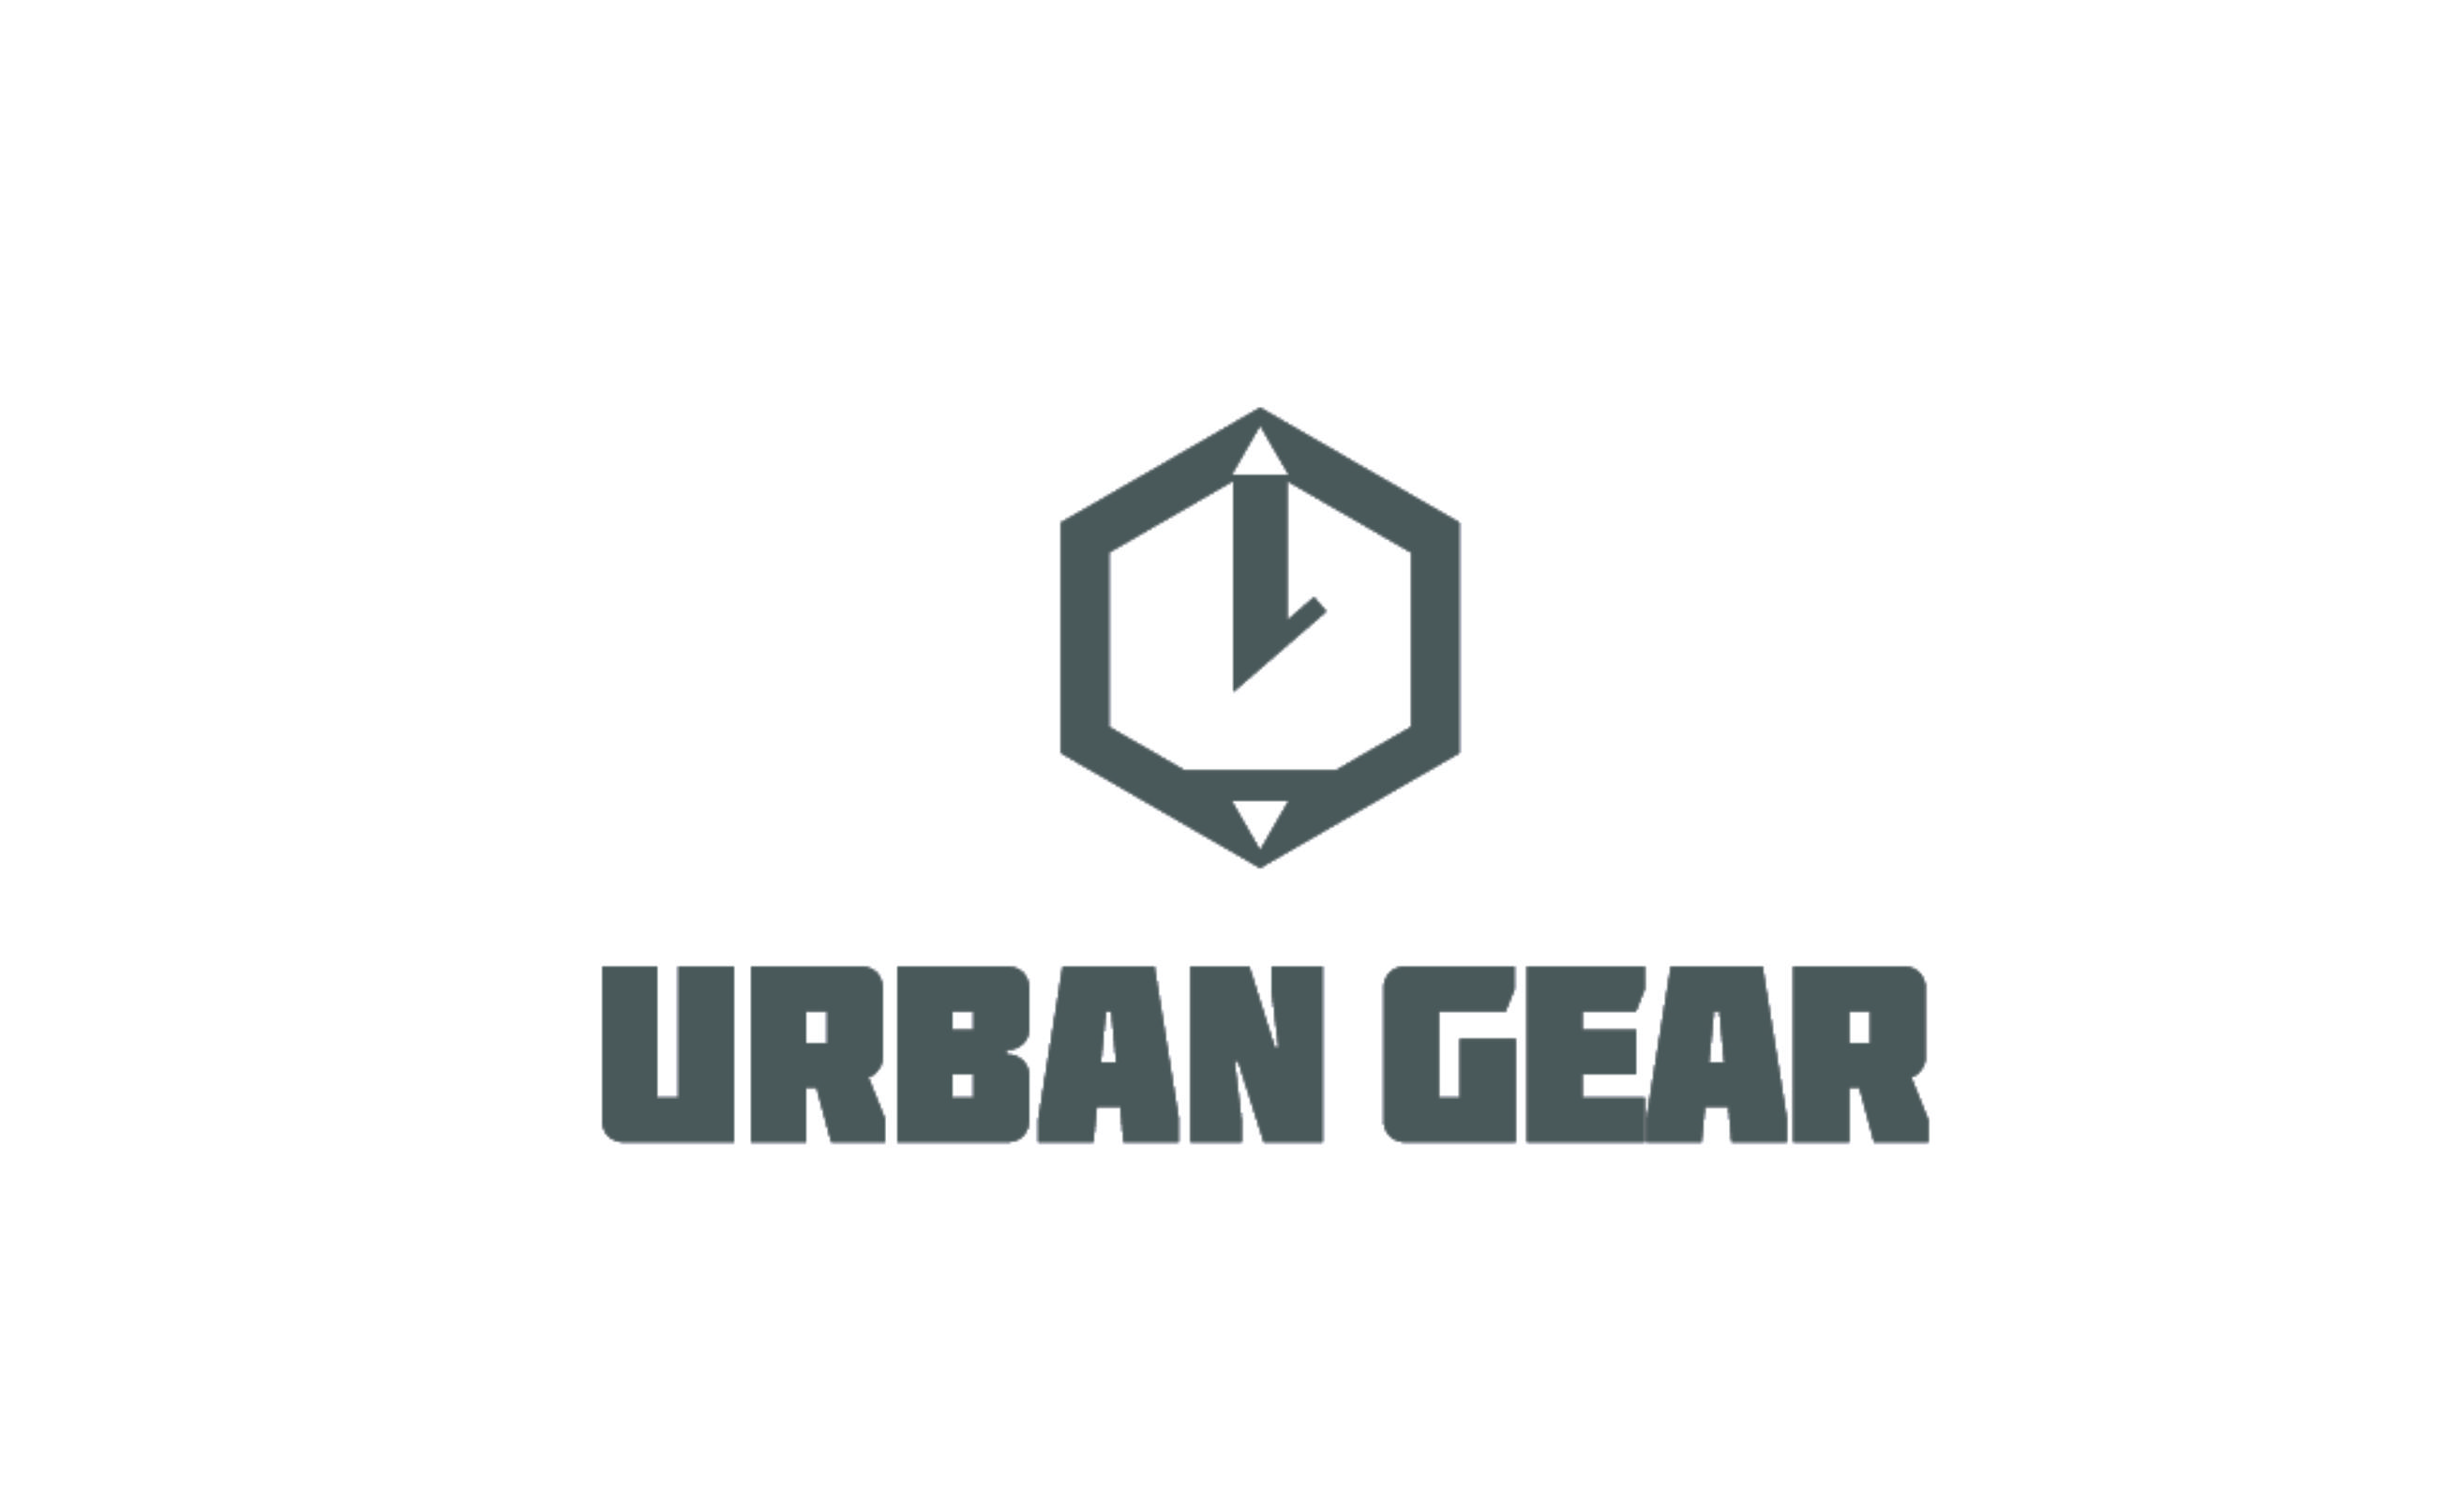 Gift Urban Gear Accessory from The Giving Tree